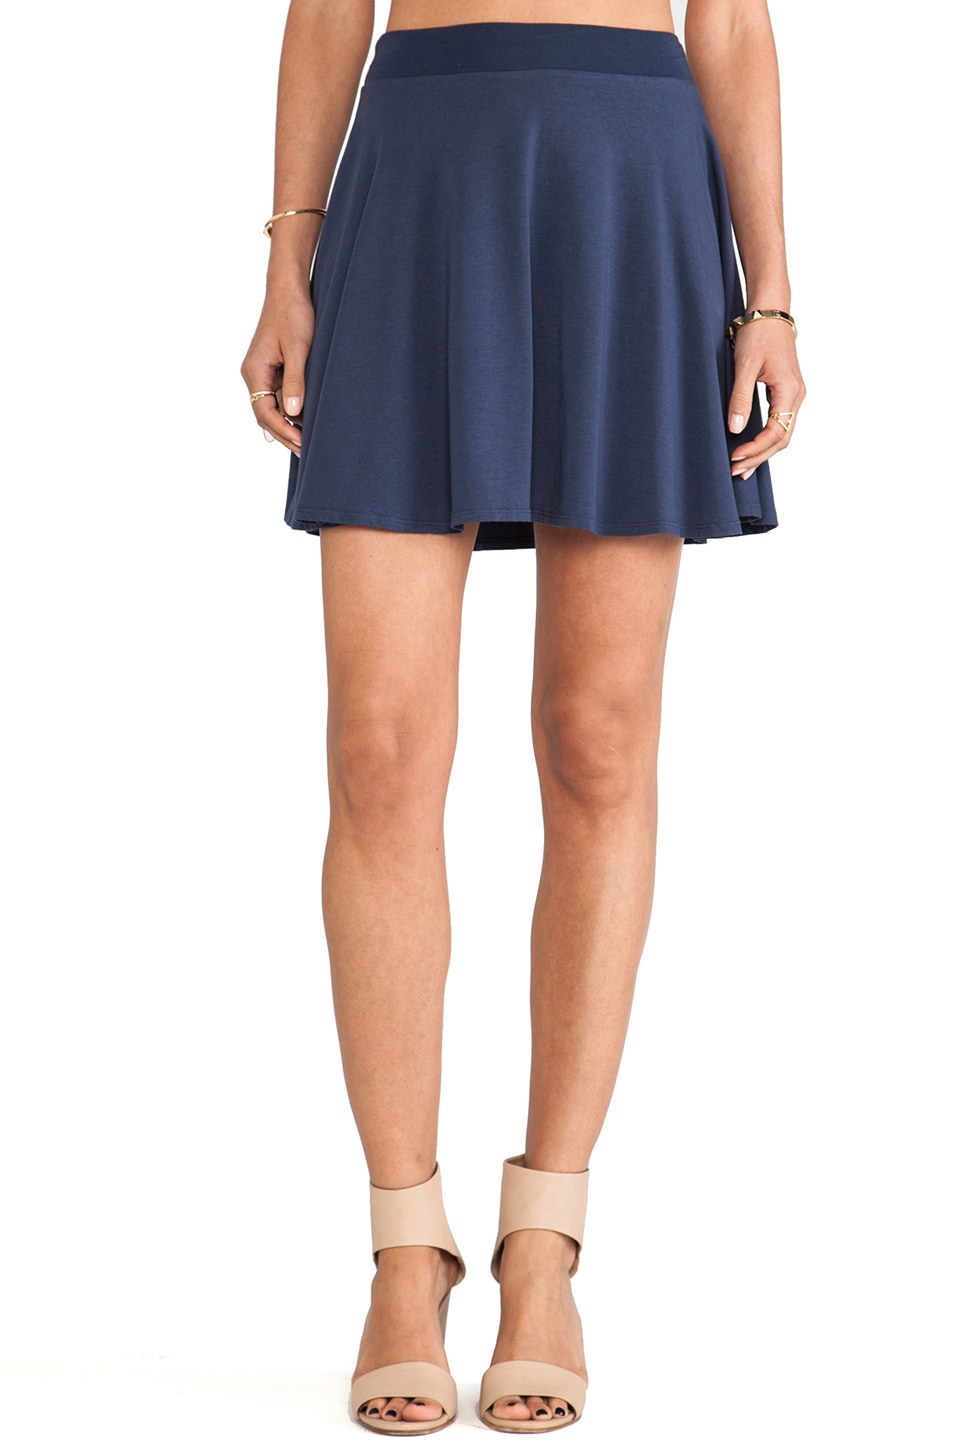 Splendid Mini Skirt in Navy